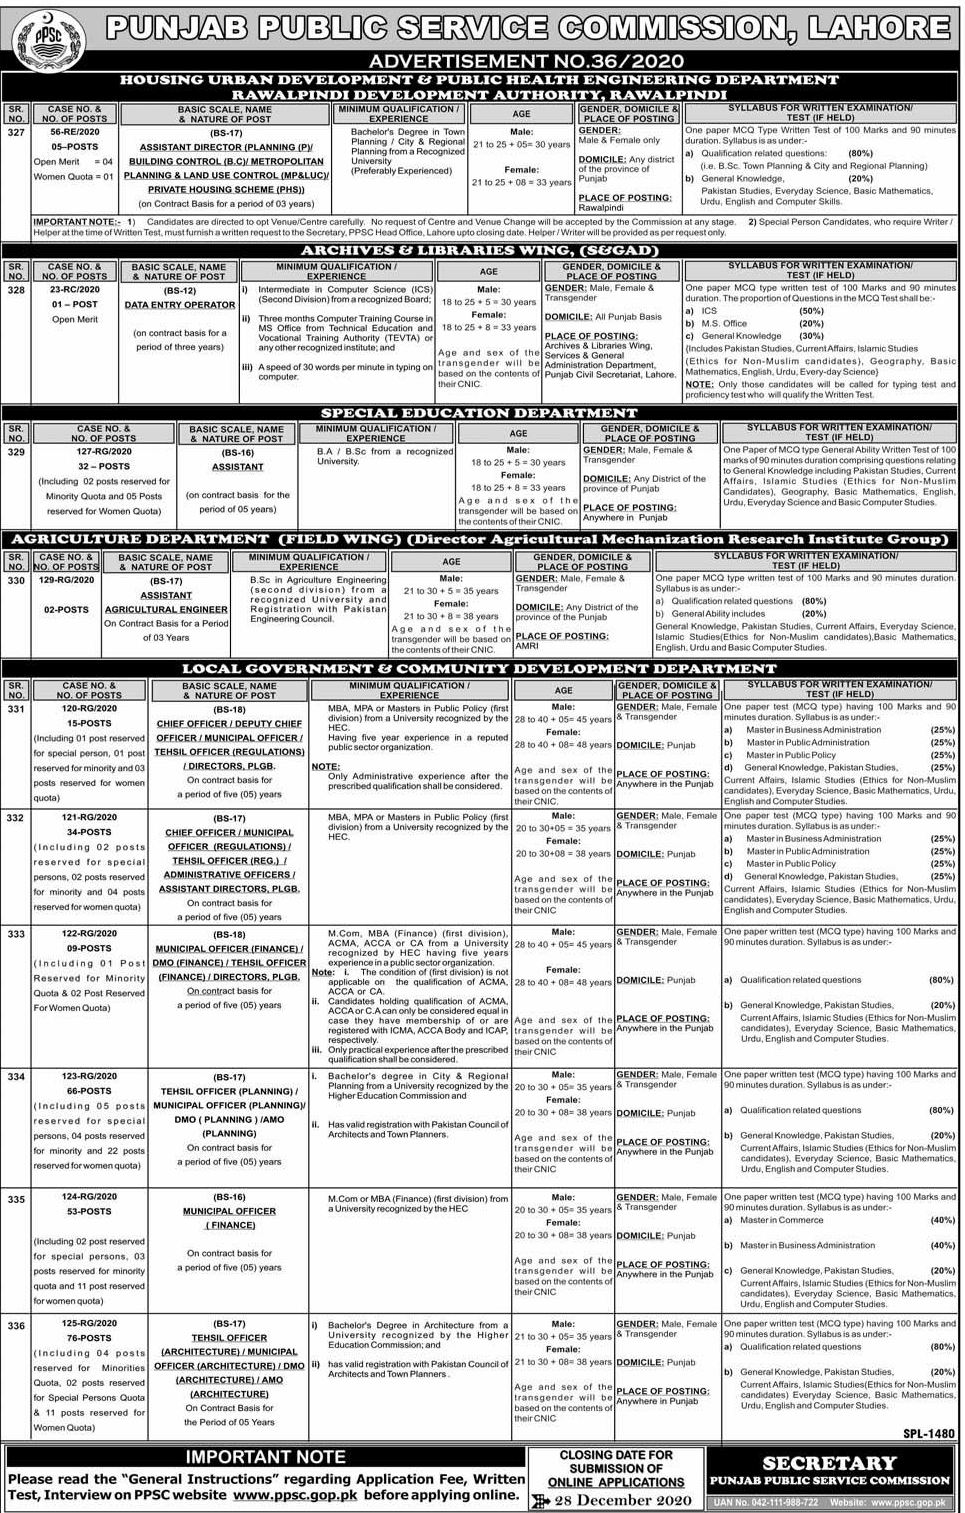 PPSC Local Govt Department and Special Education Department Jobs